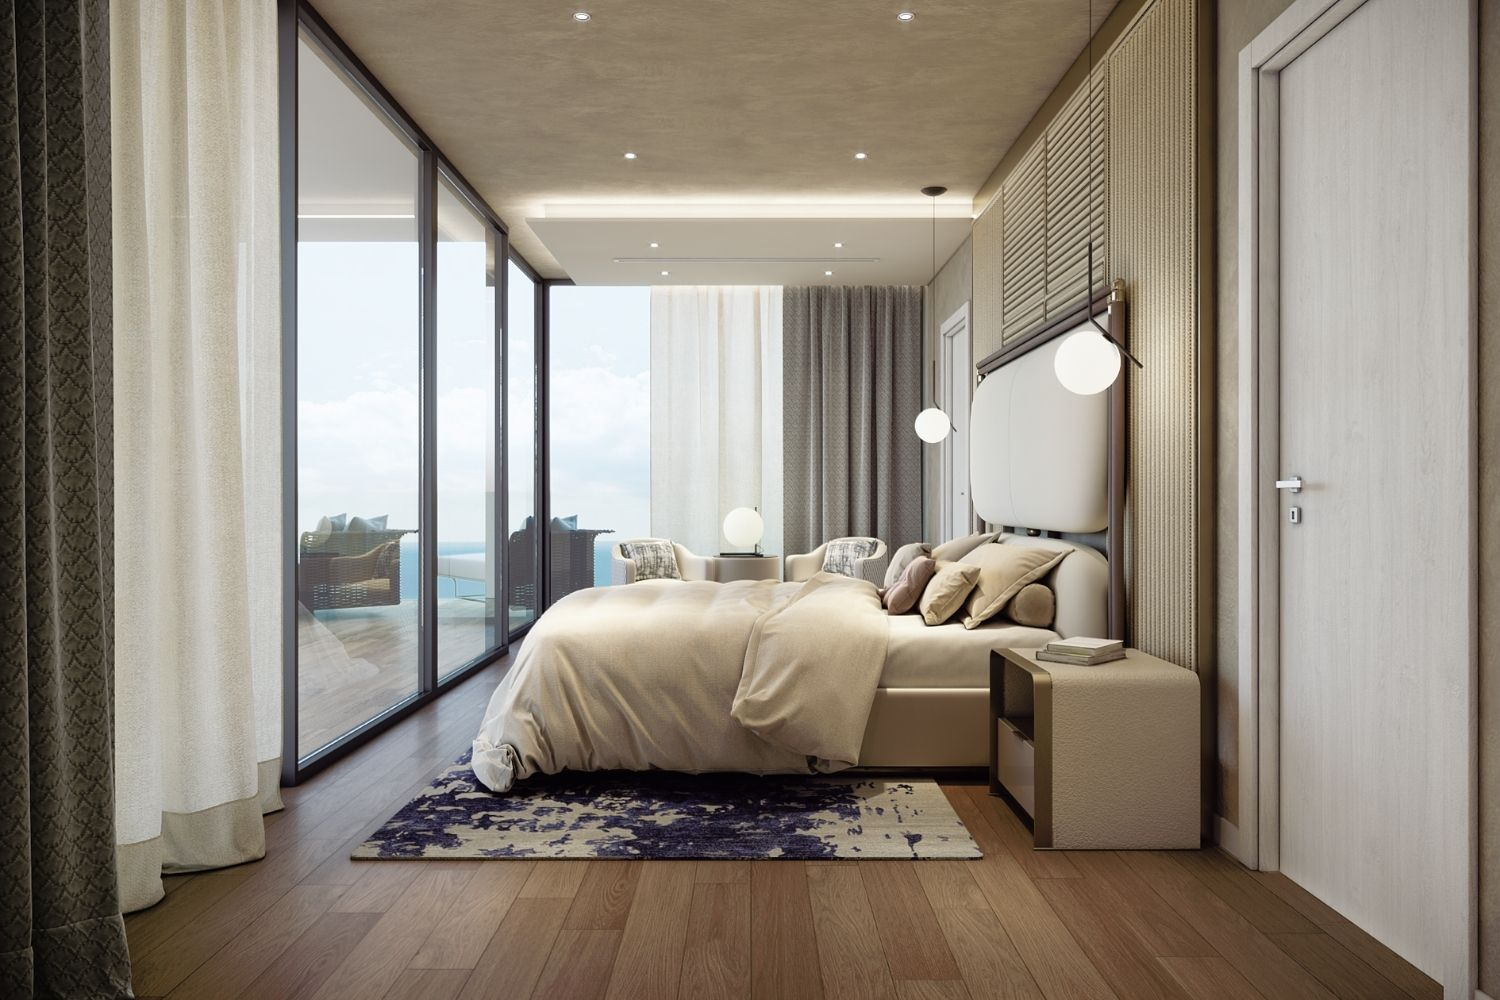 The master bedroom at the ninth floor can offer you the most beautiful dreams. Studio D73